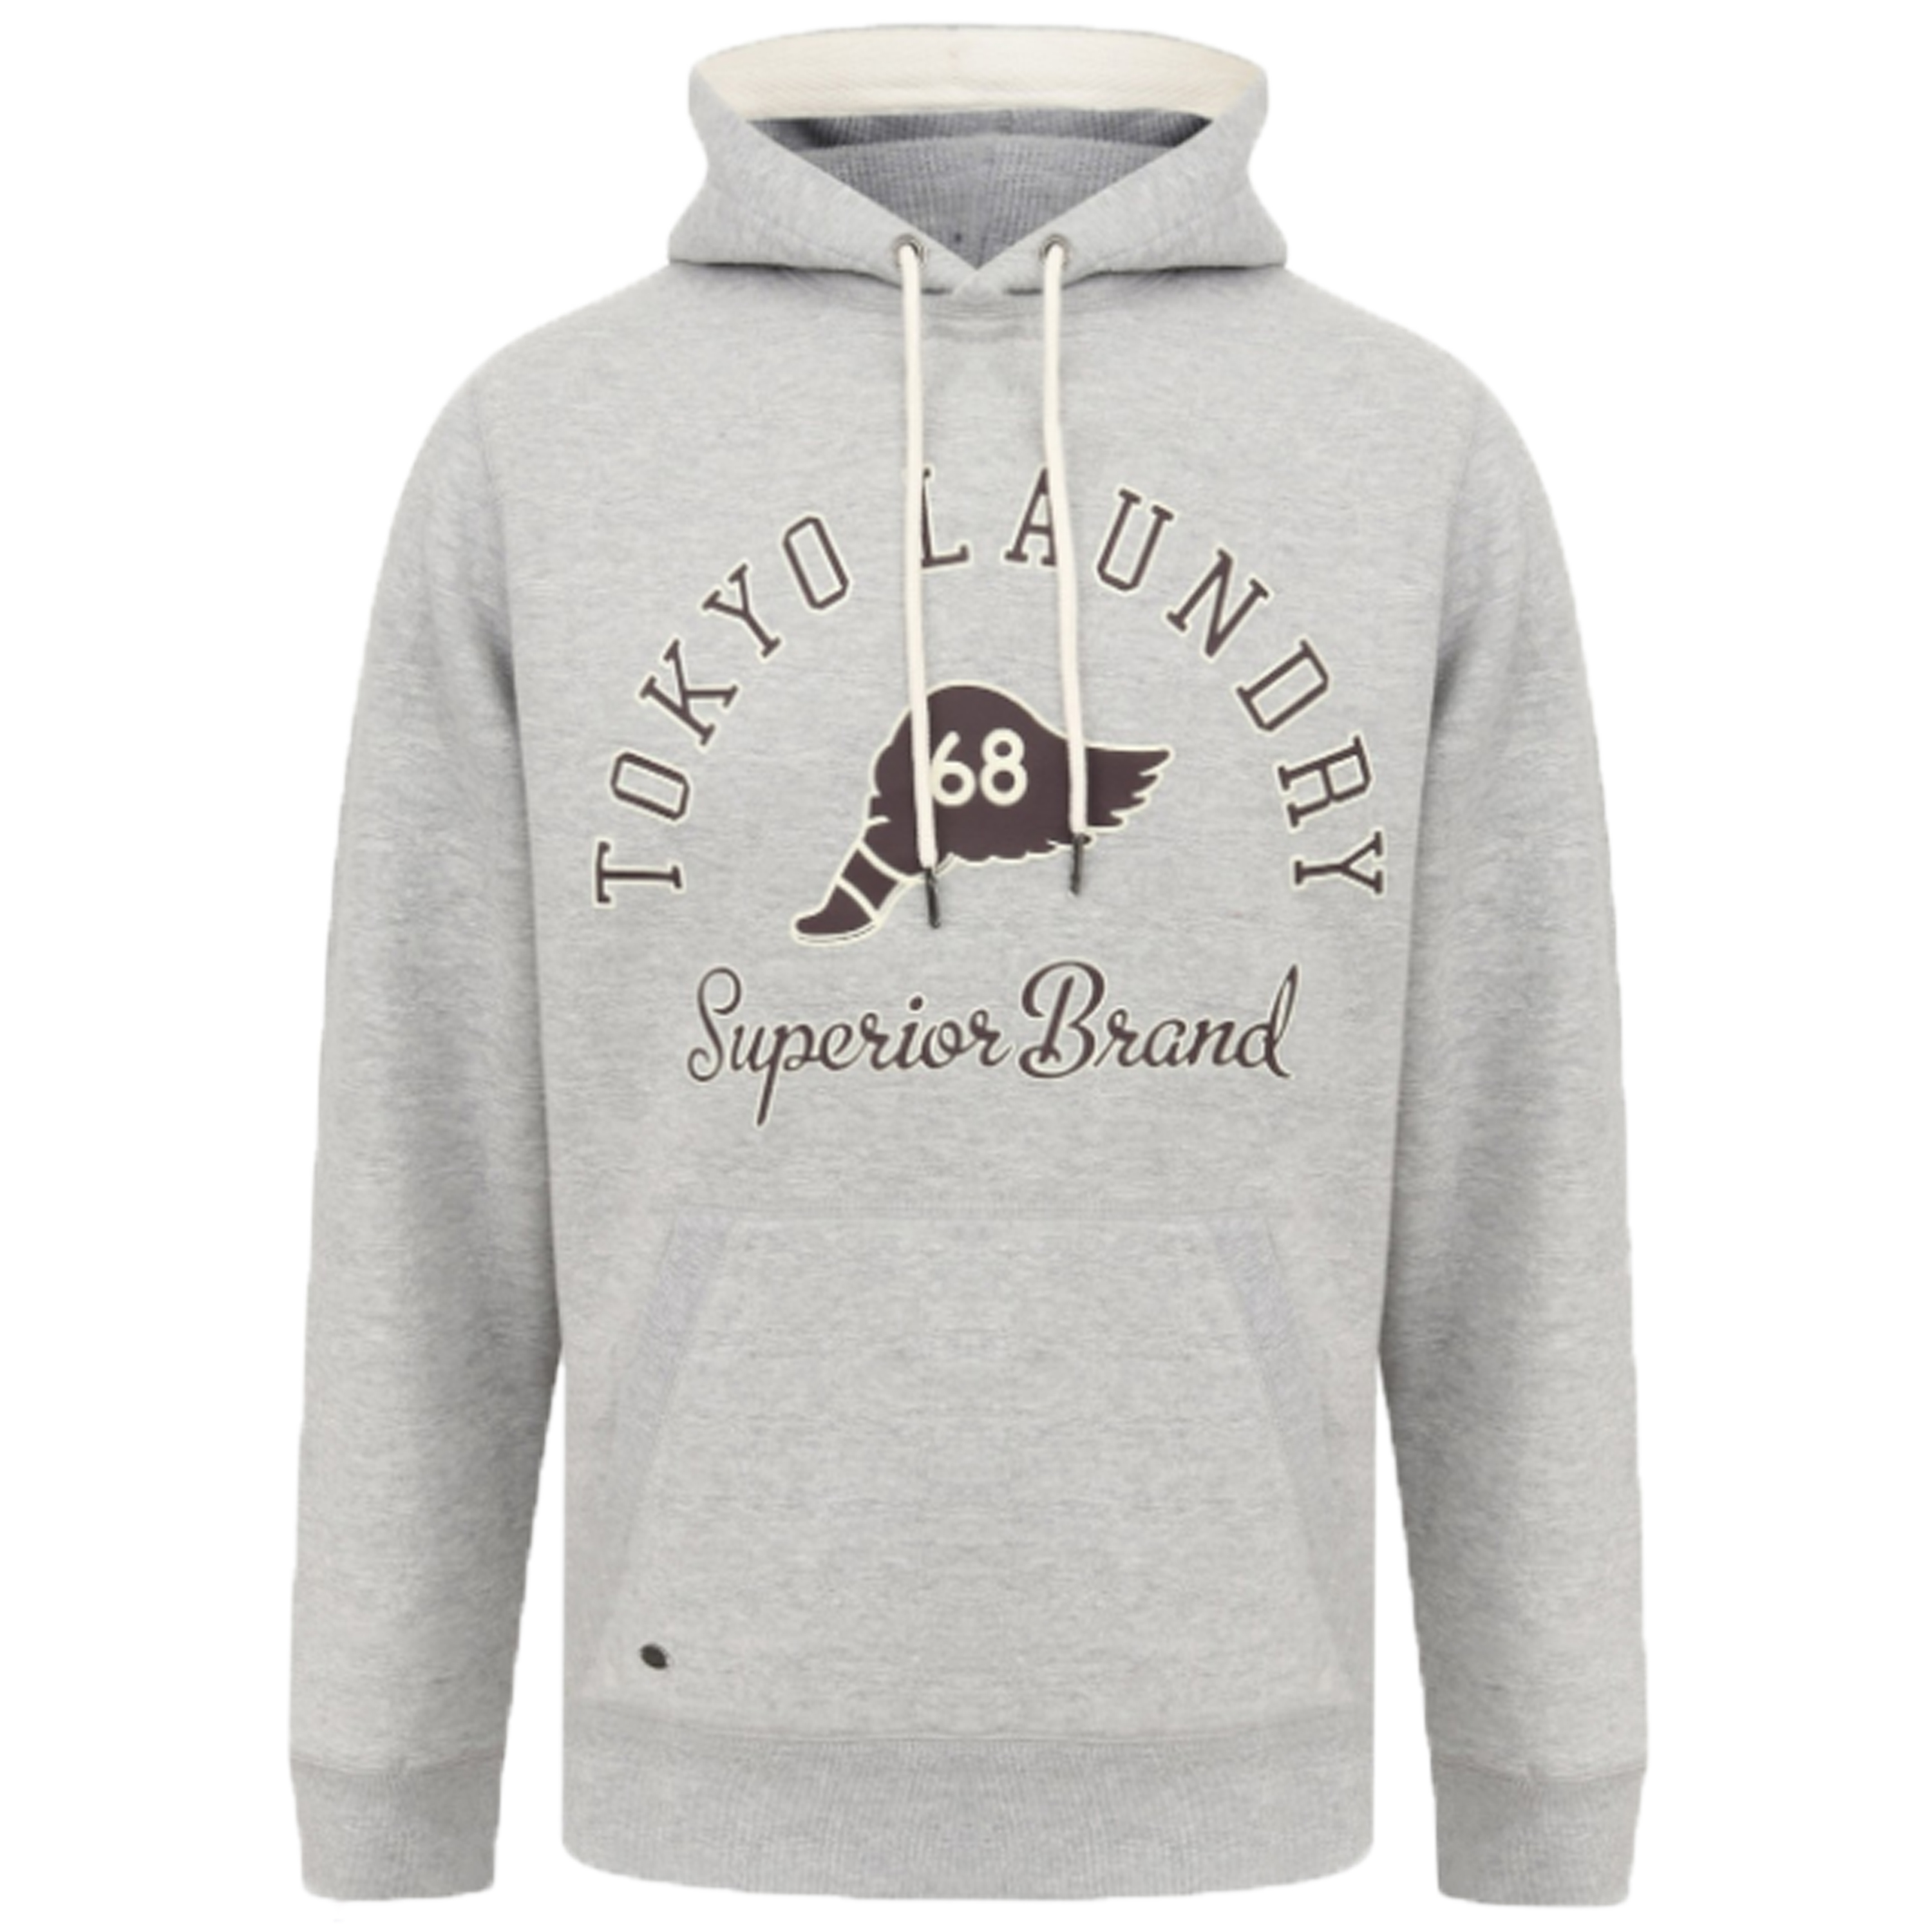 Mens-Sweatshirt-Tokyo-Laundry-Sherpa-Fleece-Hooded-Top-Pullover-Winter-Fashion thumbnail 7